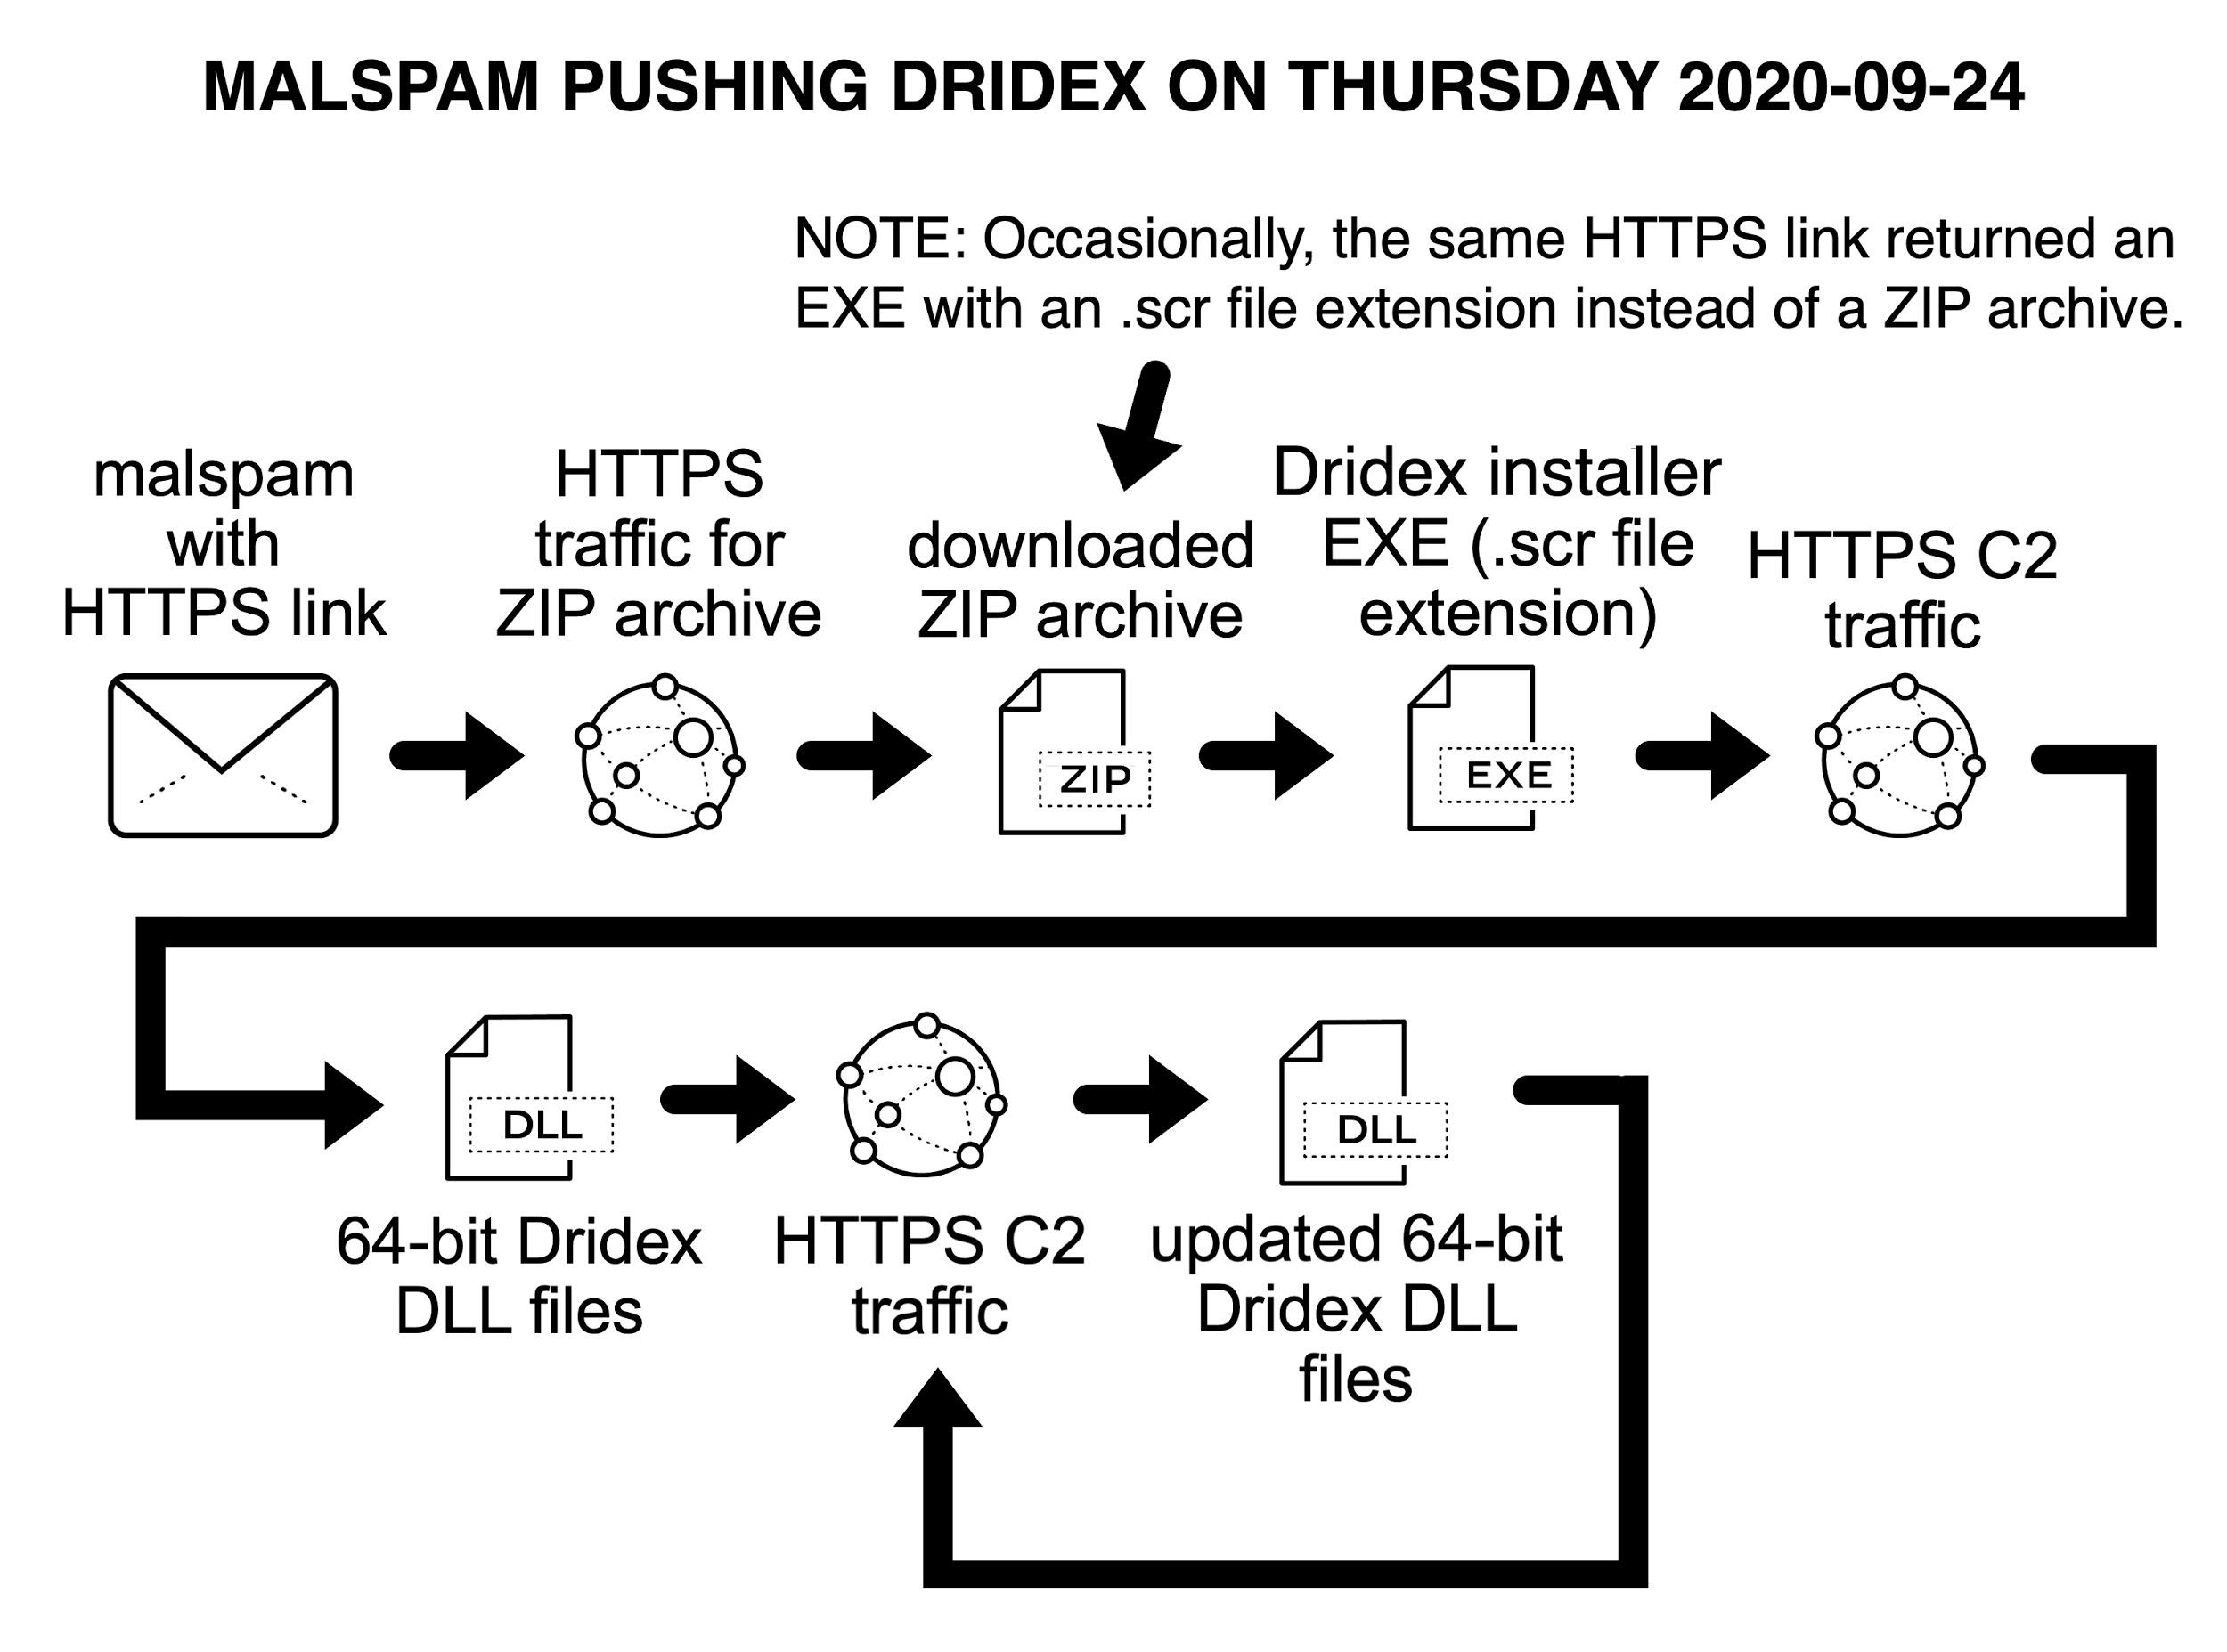 Malspam pushing Dridex on Thursday 2020-09-24, Note: Occasionally, the same HTTPS link returned an EXE with an .scr file extension instead of a ZIP archive. The chain of events seen was as follows: malspam with HTTPS link, HTTPS traffic for ZIP archive, downloaded ZIP archive, Dridex installer EXE (.scr file extension), HTTPS C2 traffic, 64-bit Dridex DLL files, HTTPS C2 traffic, updated 64-bit Dridex DLL files